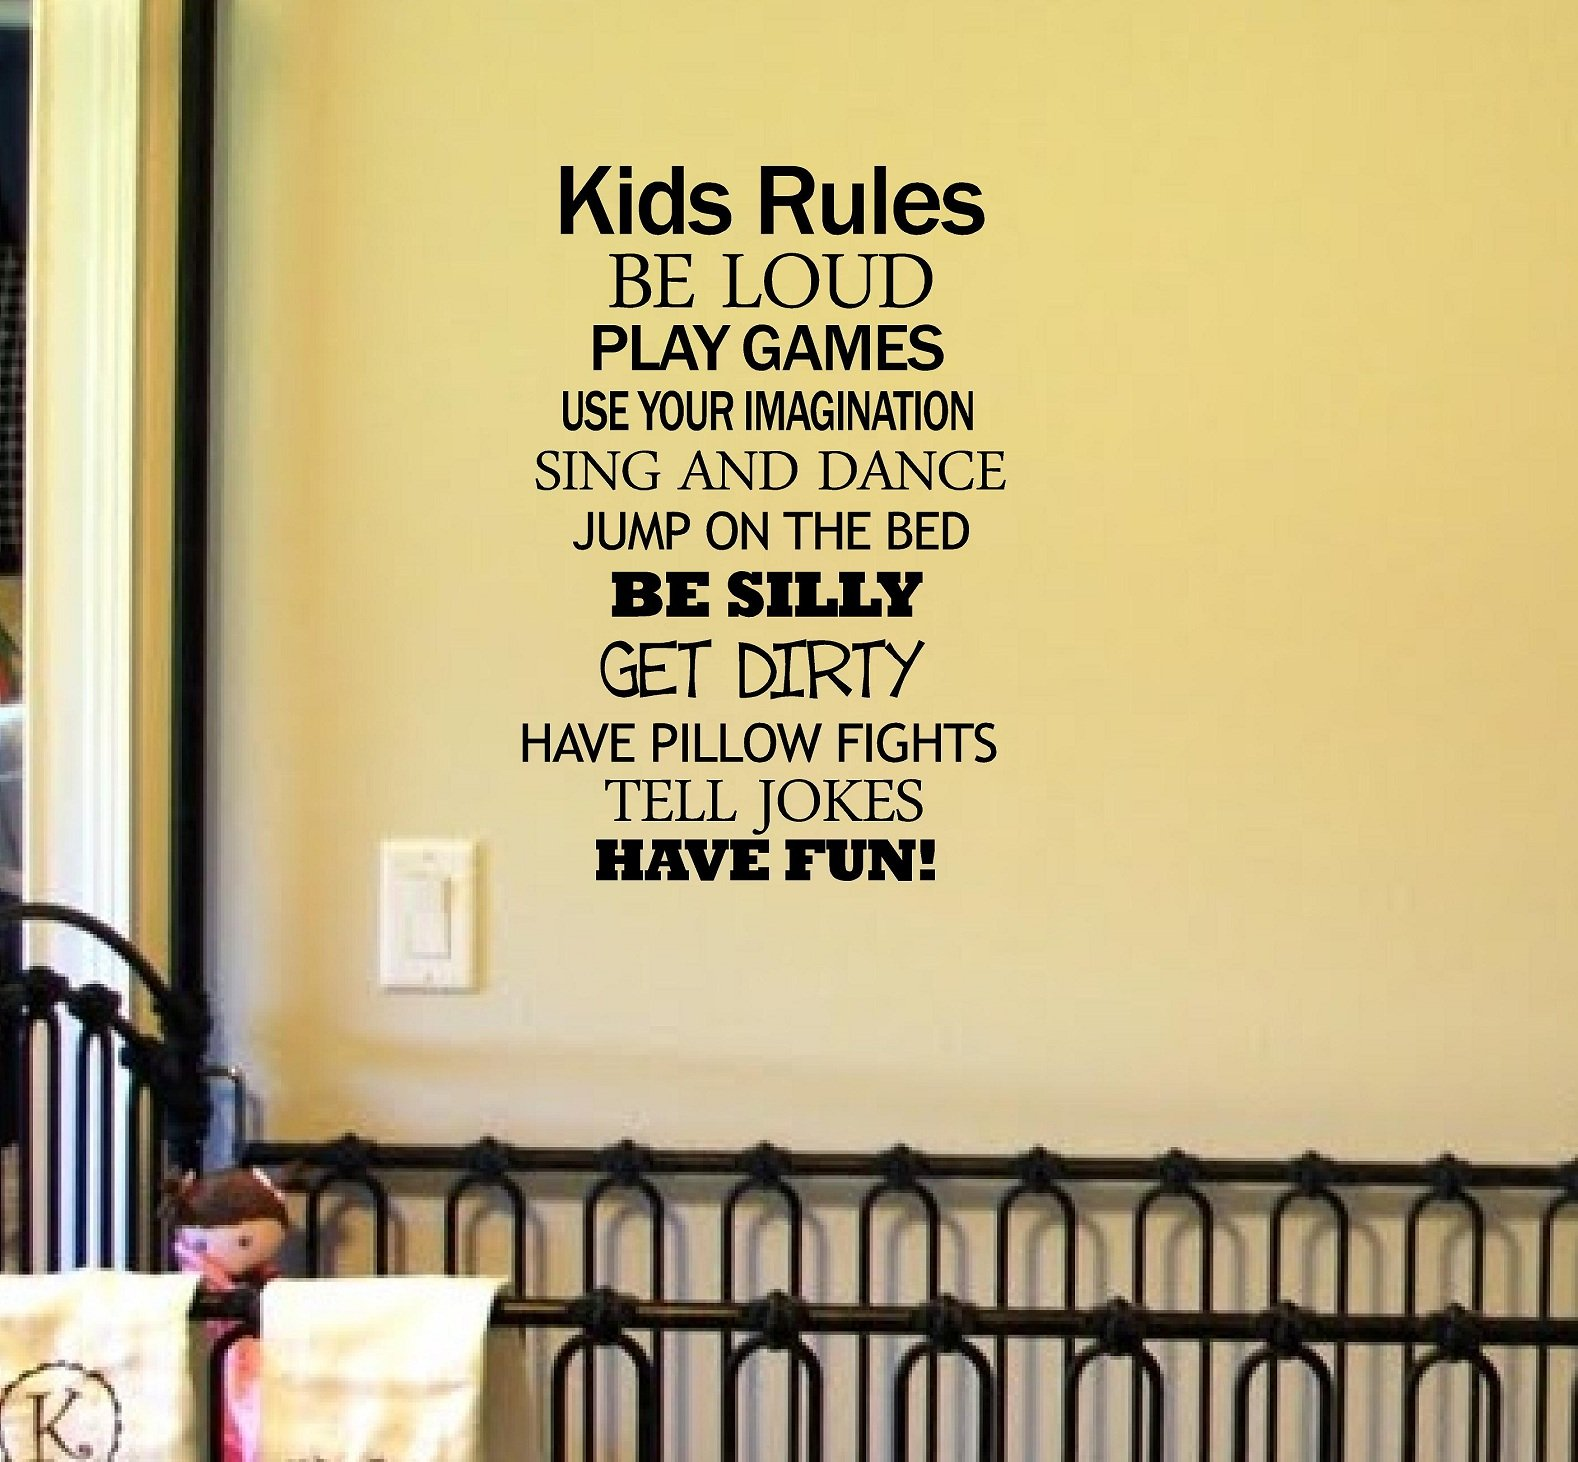 Kids Rules Be Loud Play Games Use Your Imagination Sing and Dance Jump on the Bed Be Silly Get Dirty Have Pillow Fights Tell Jokes Have Fun! Vinyl Car Sticker Symbol Silhouette Keypad Track Pad Decal Laptop Skin Ipad Macbook Window Truck Motorcycle